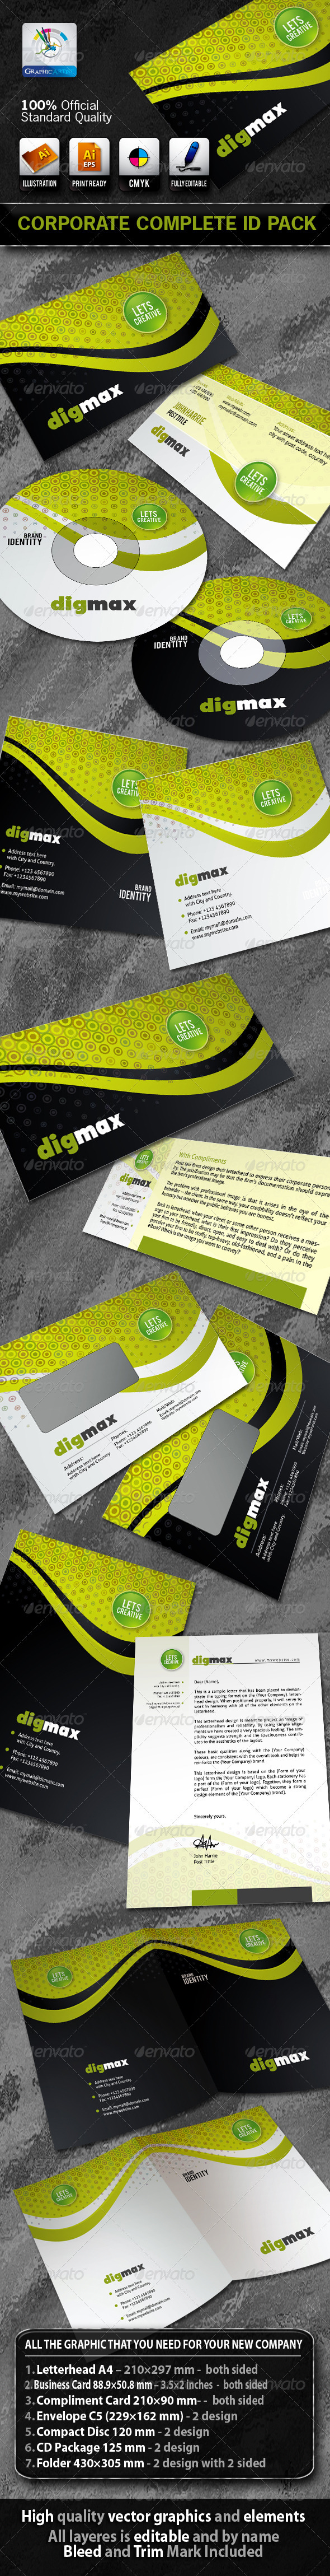 DigMax Business Corporate ID Pack